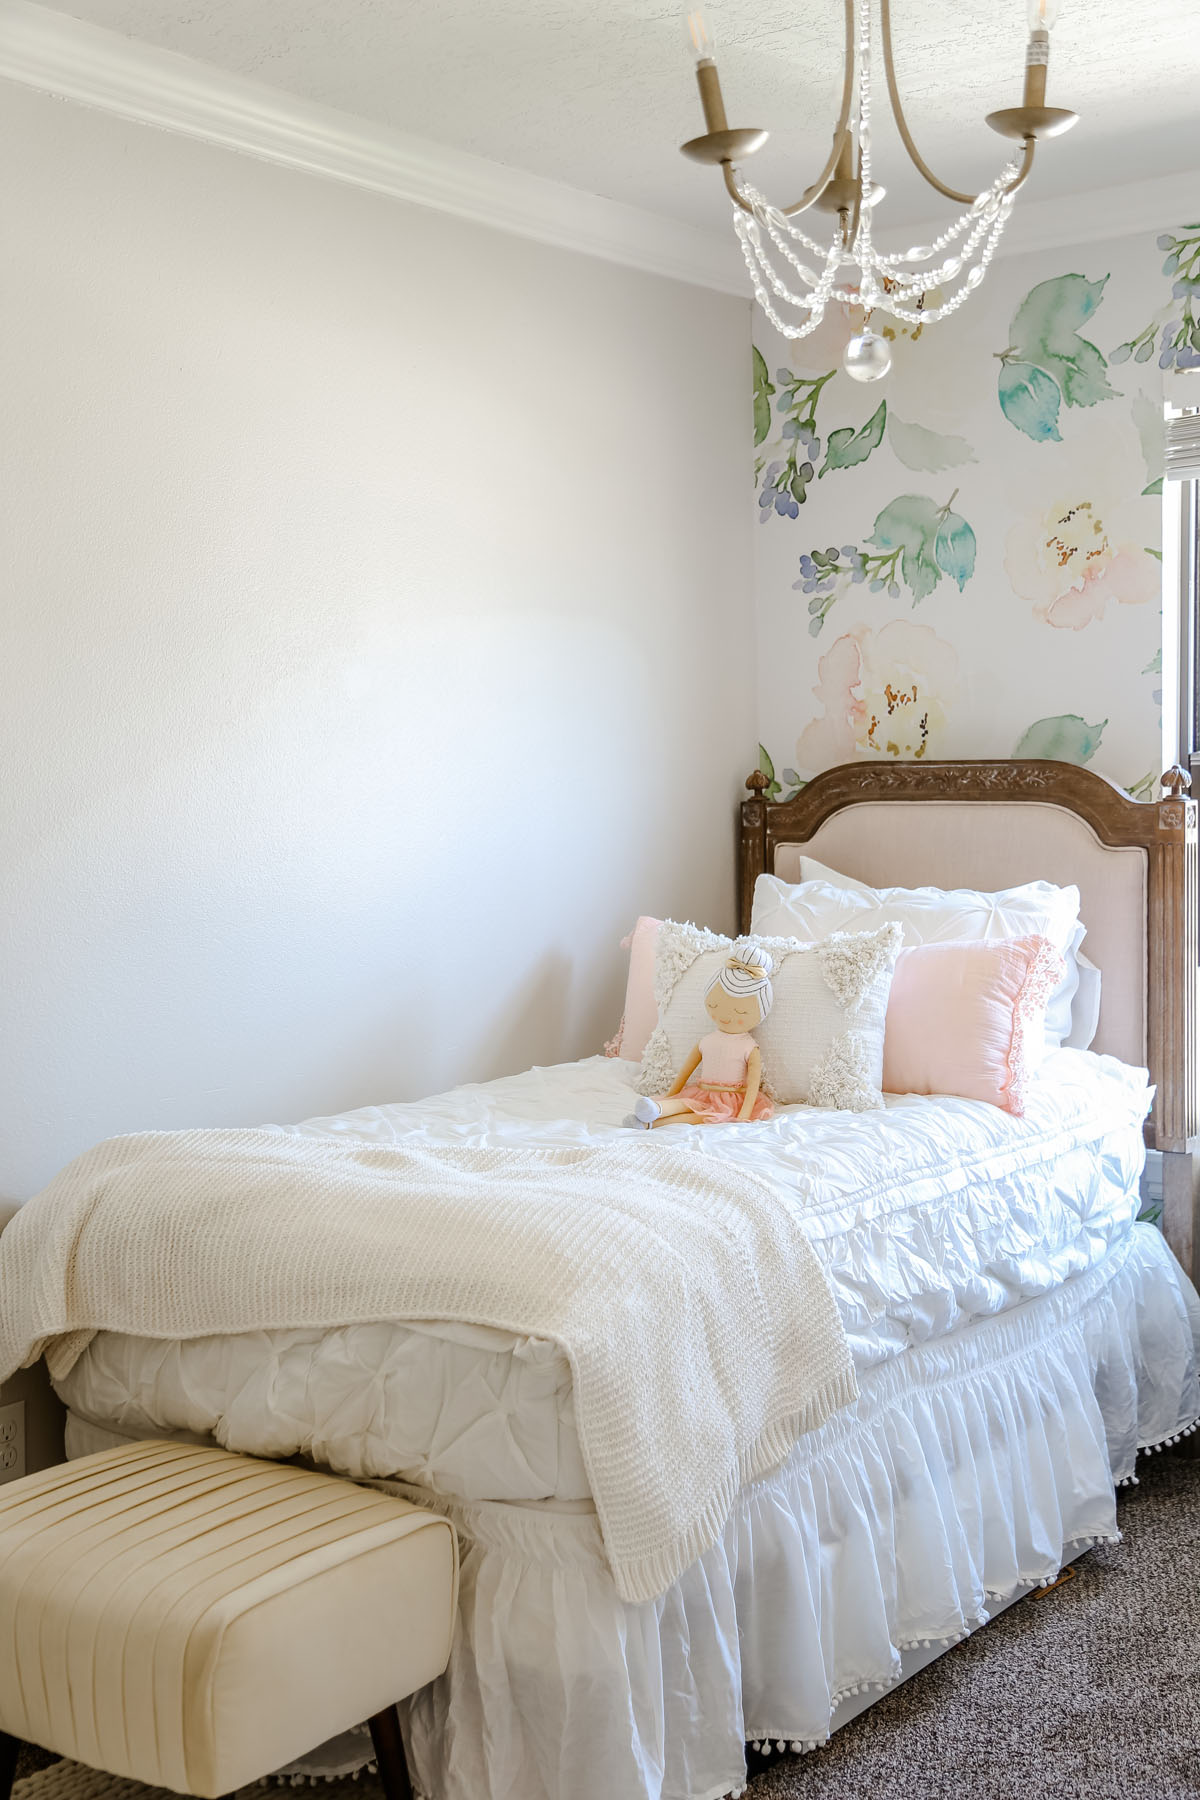 Girls Room Makeover with Before & After Pictures by Utah lifestyle blogger, By Jen Rose